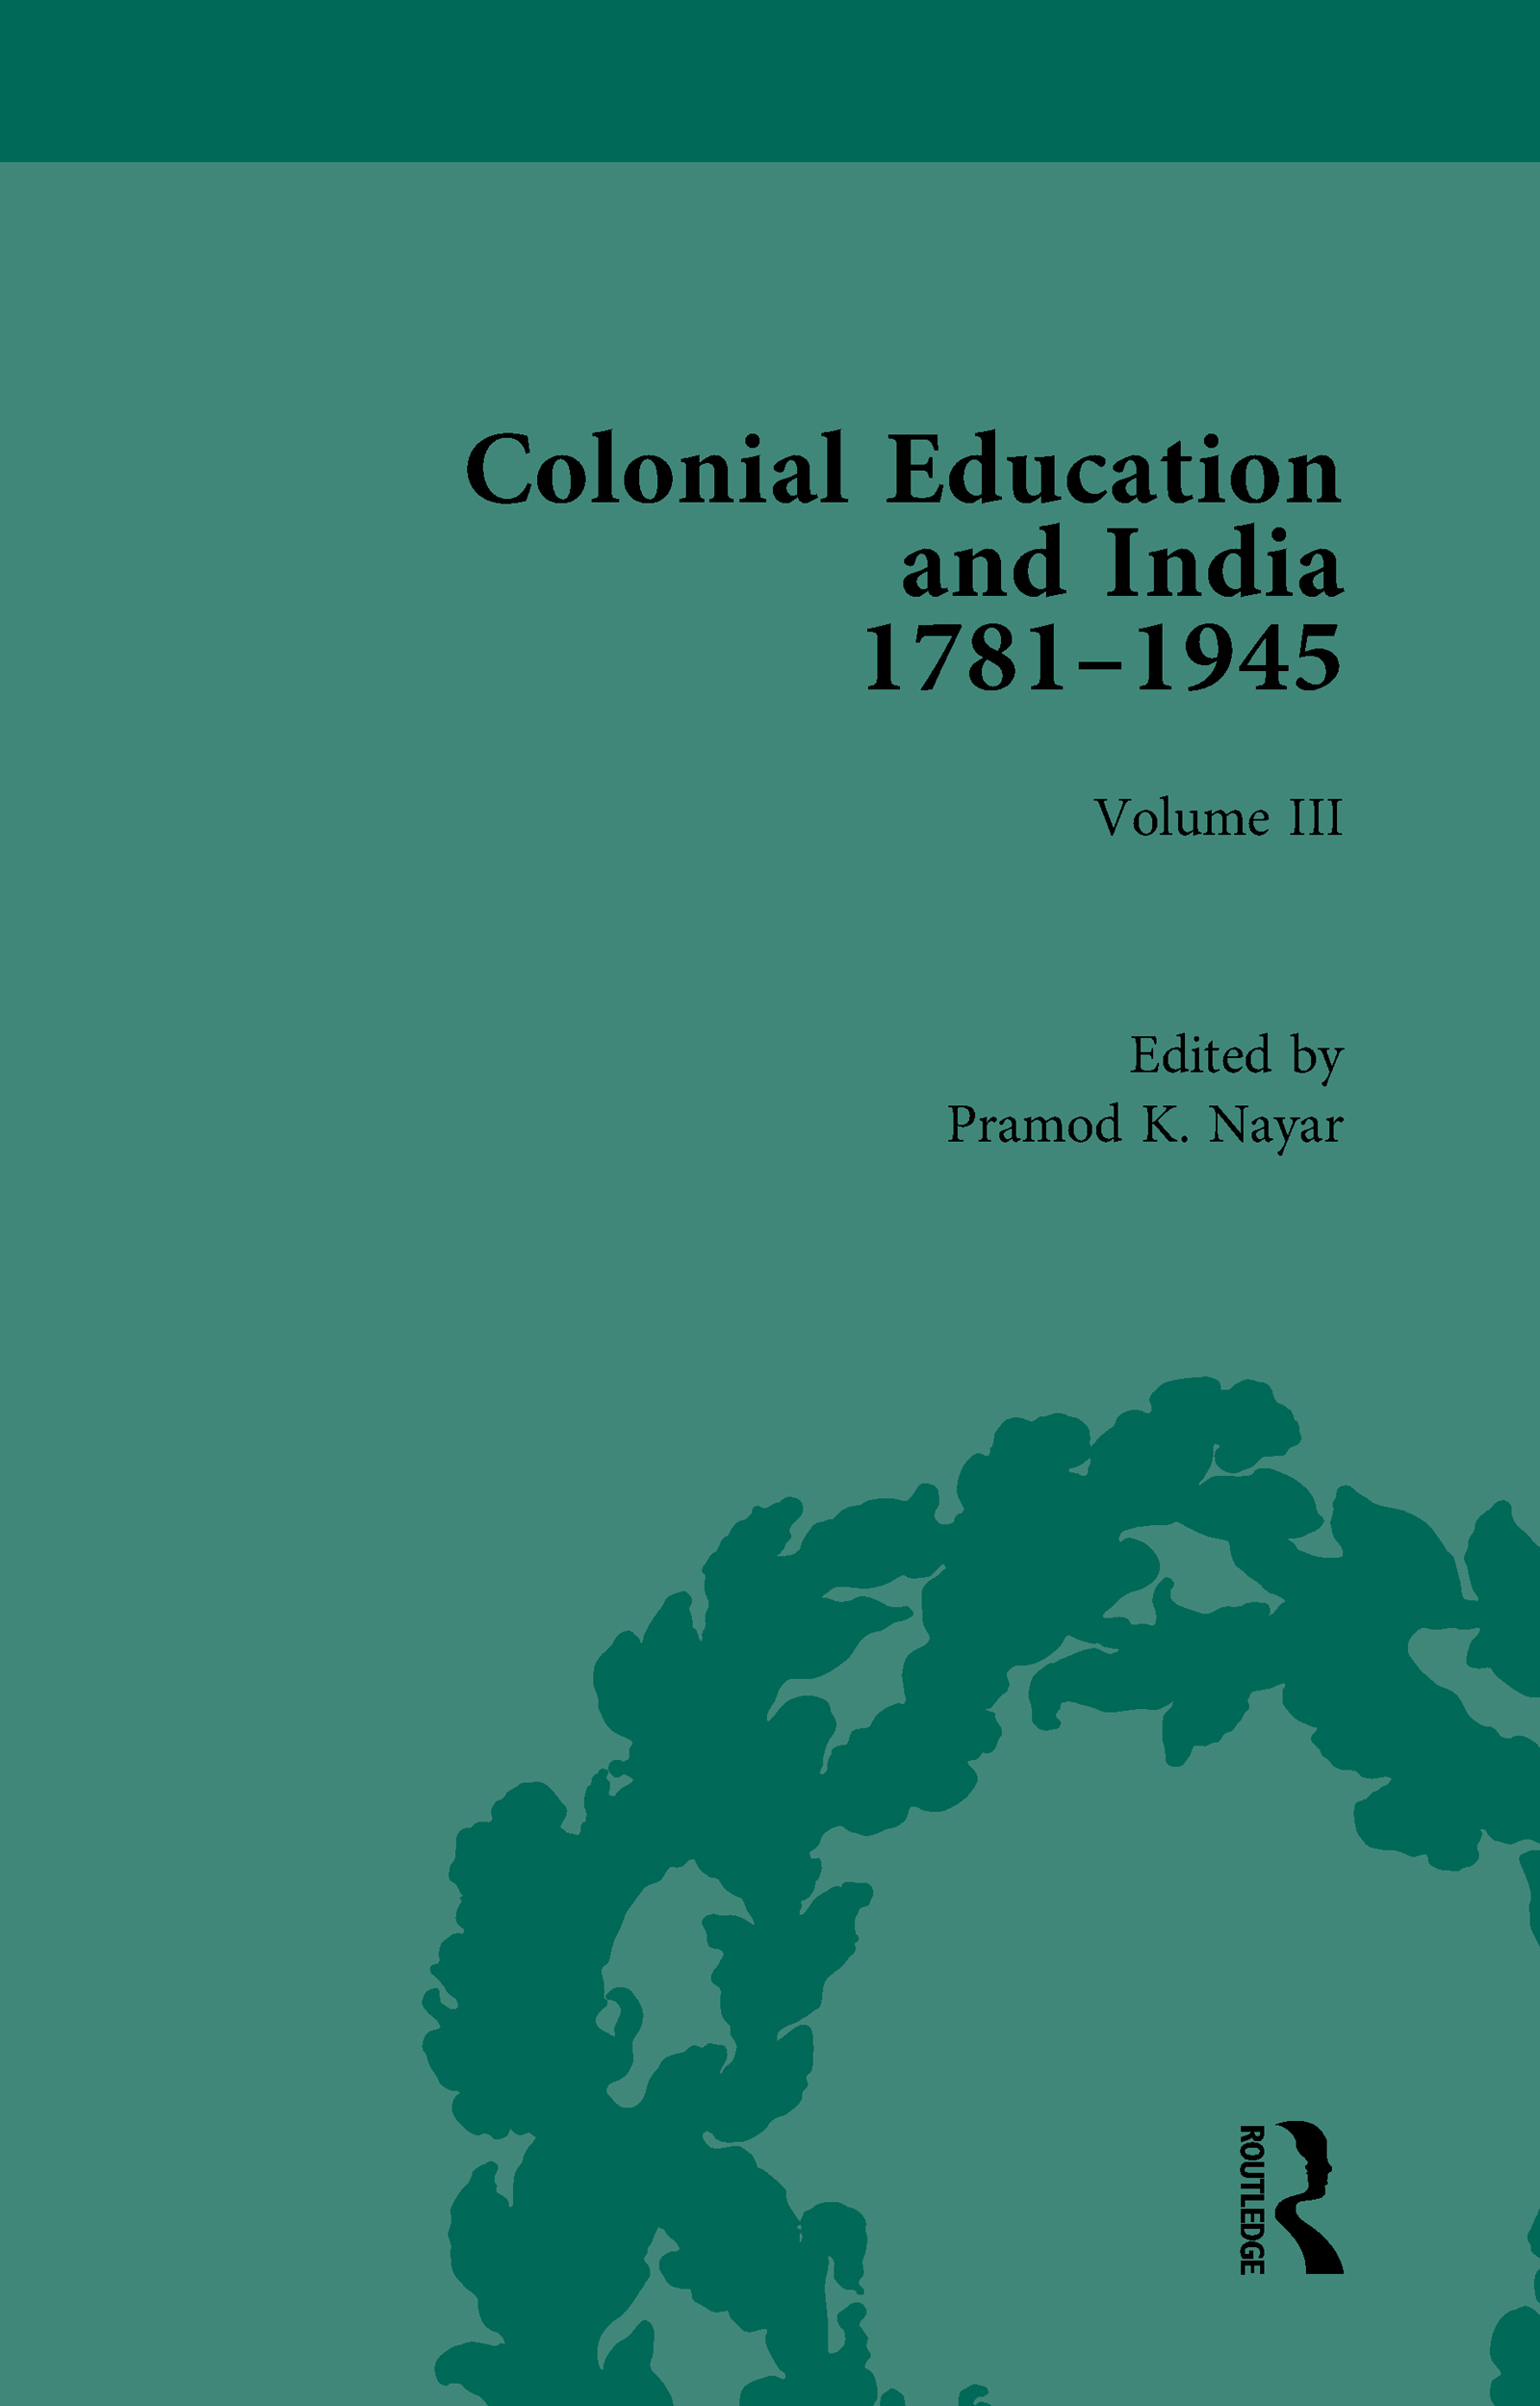 Colonial Education and India 1781-1945: Volume III book cover